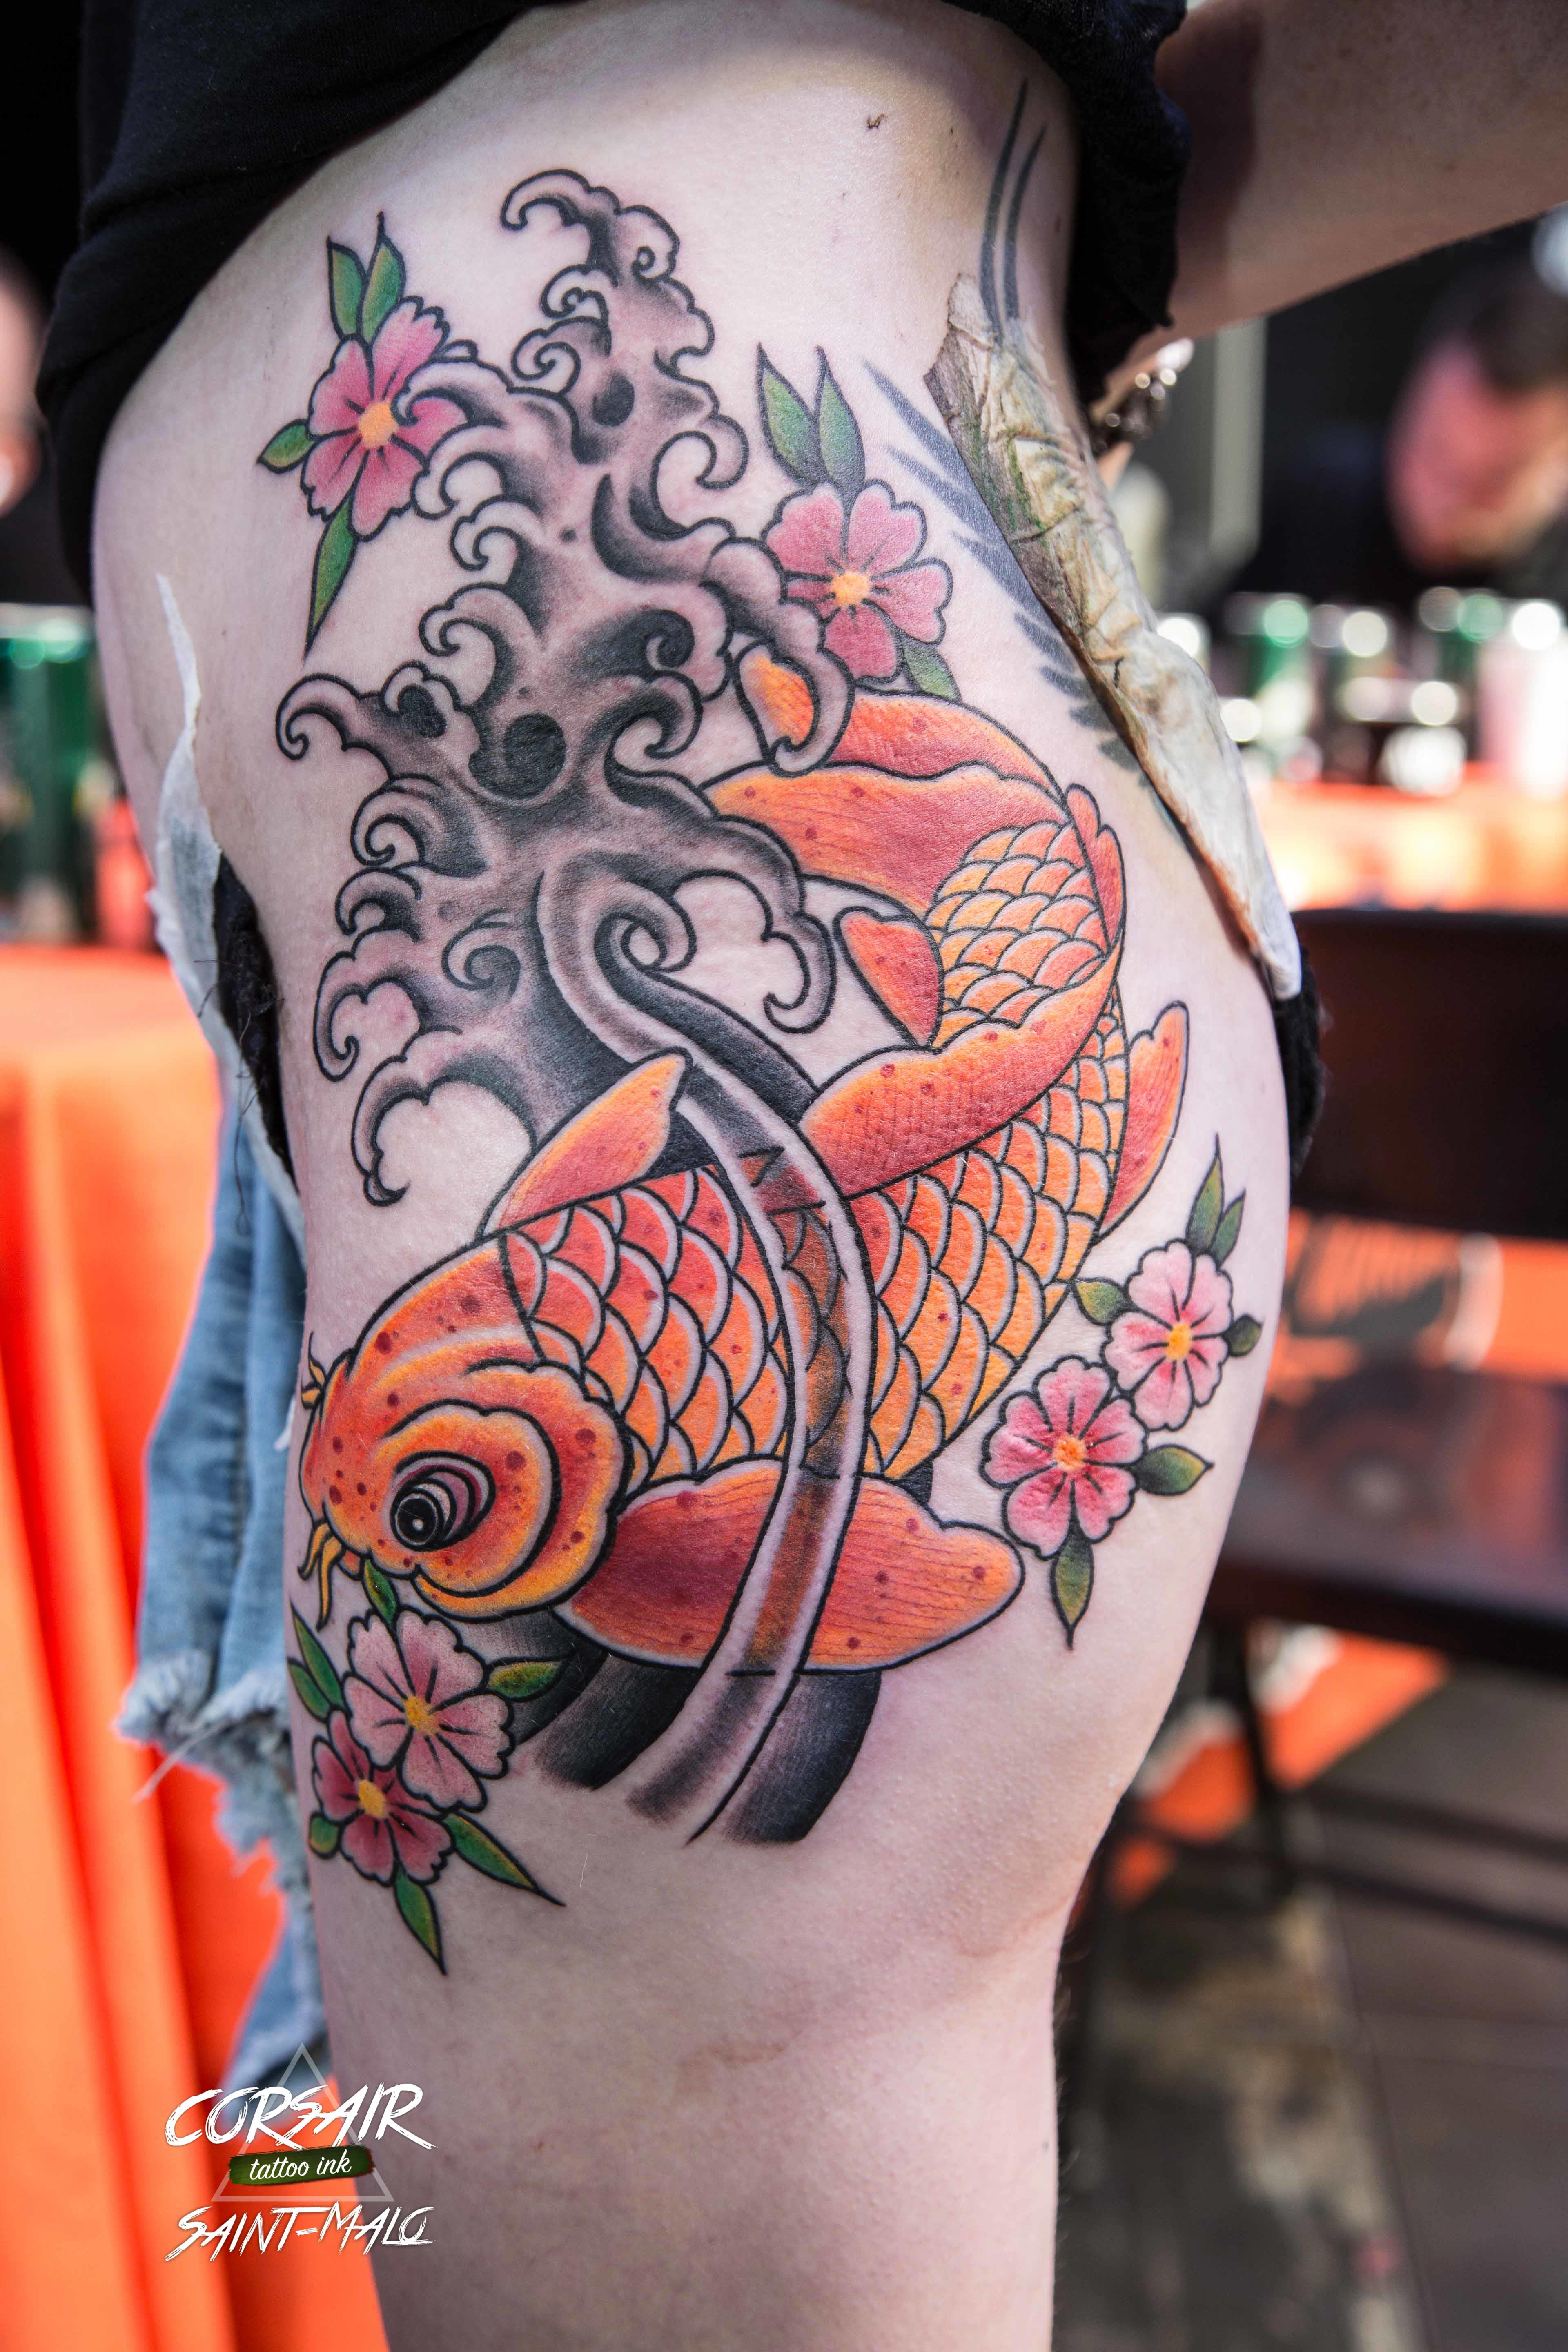 convention-tatouage-saint-malo-bretagne-corsair-tattoo-ink-tattoo-poisson